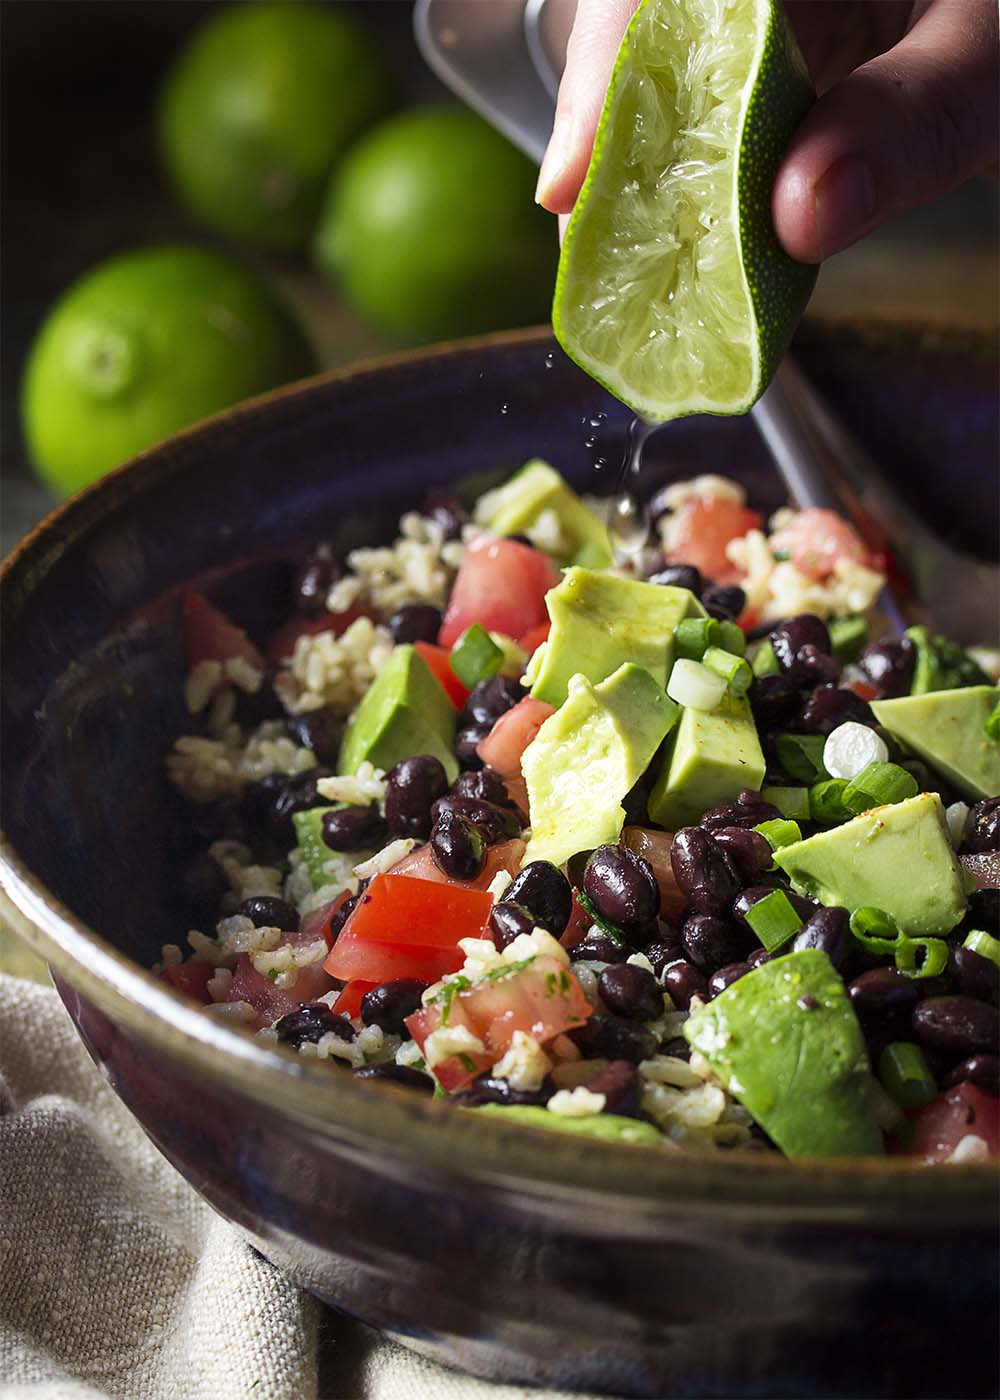 Squeezing lime into a serving bowl of salad with rice, black beans, tomatoes, and avocado.